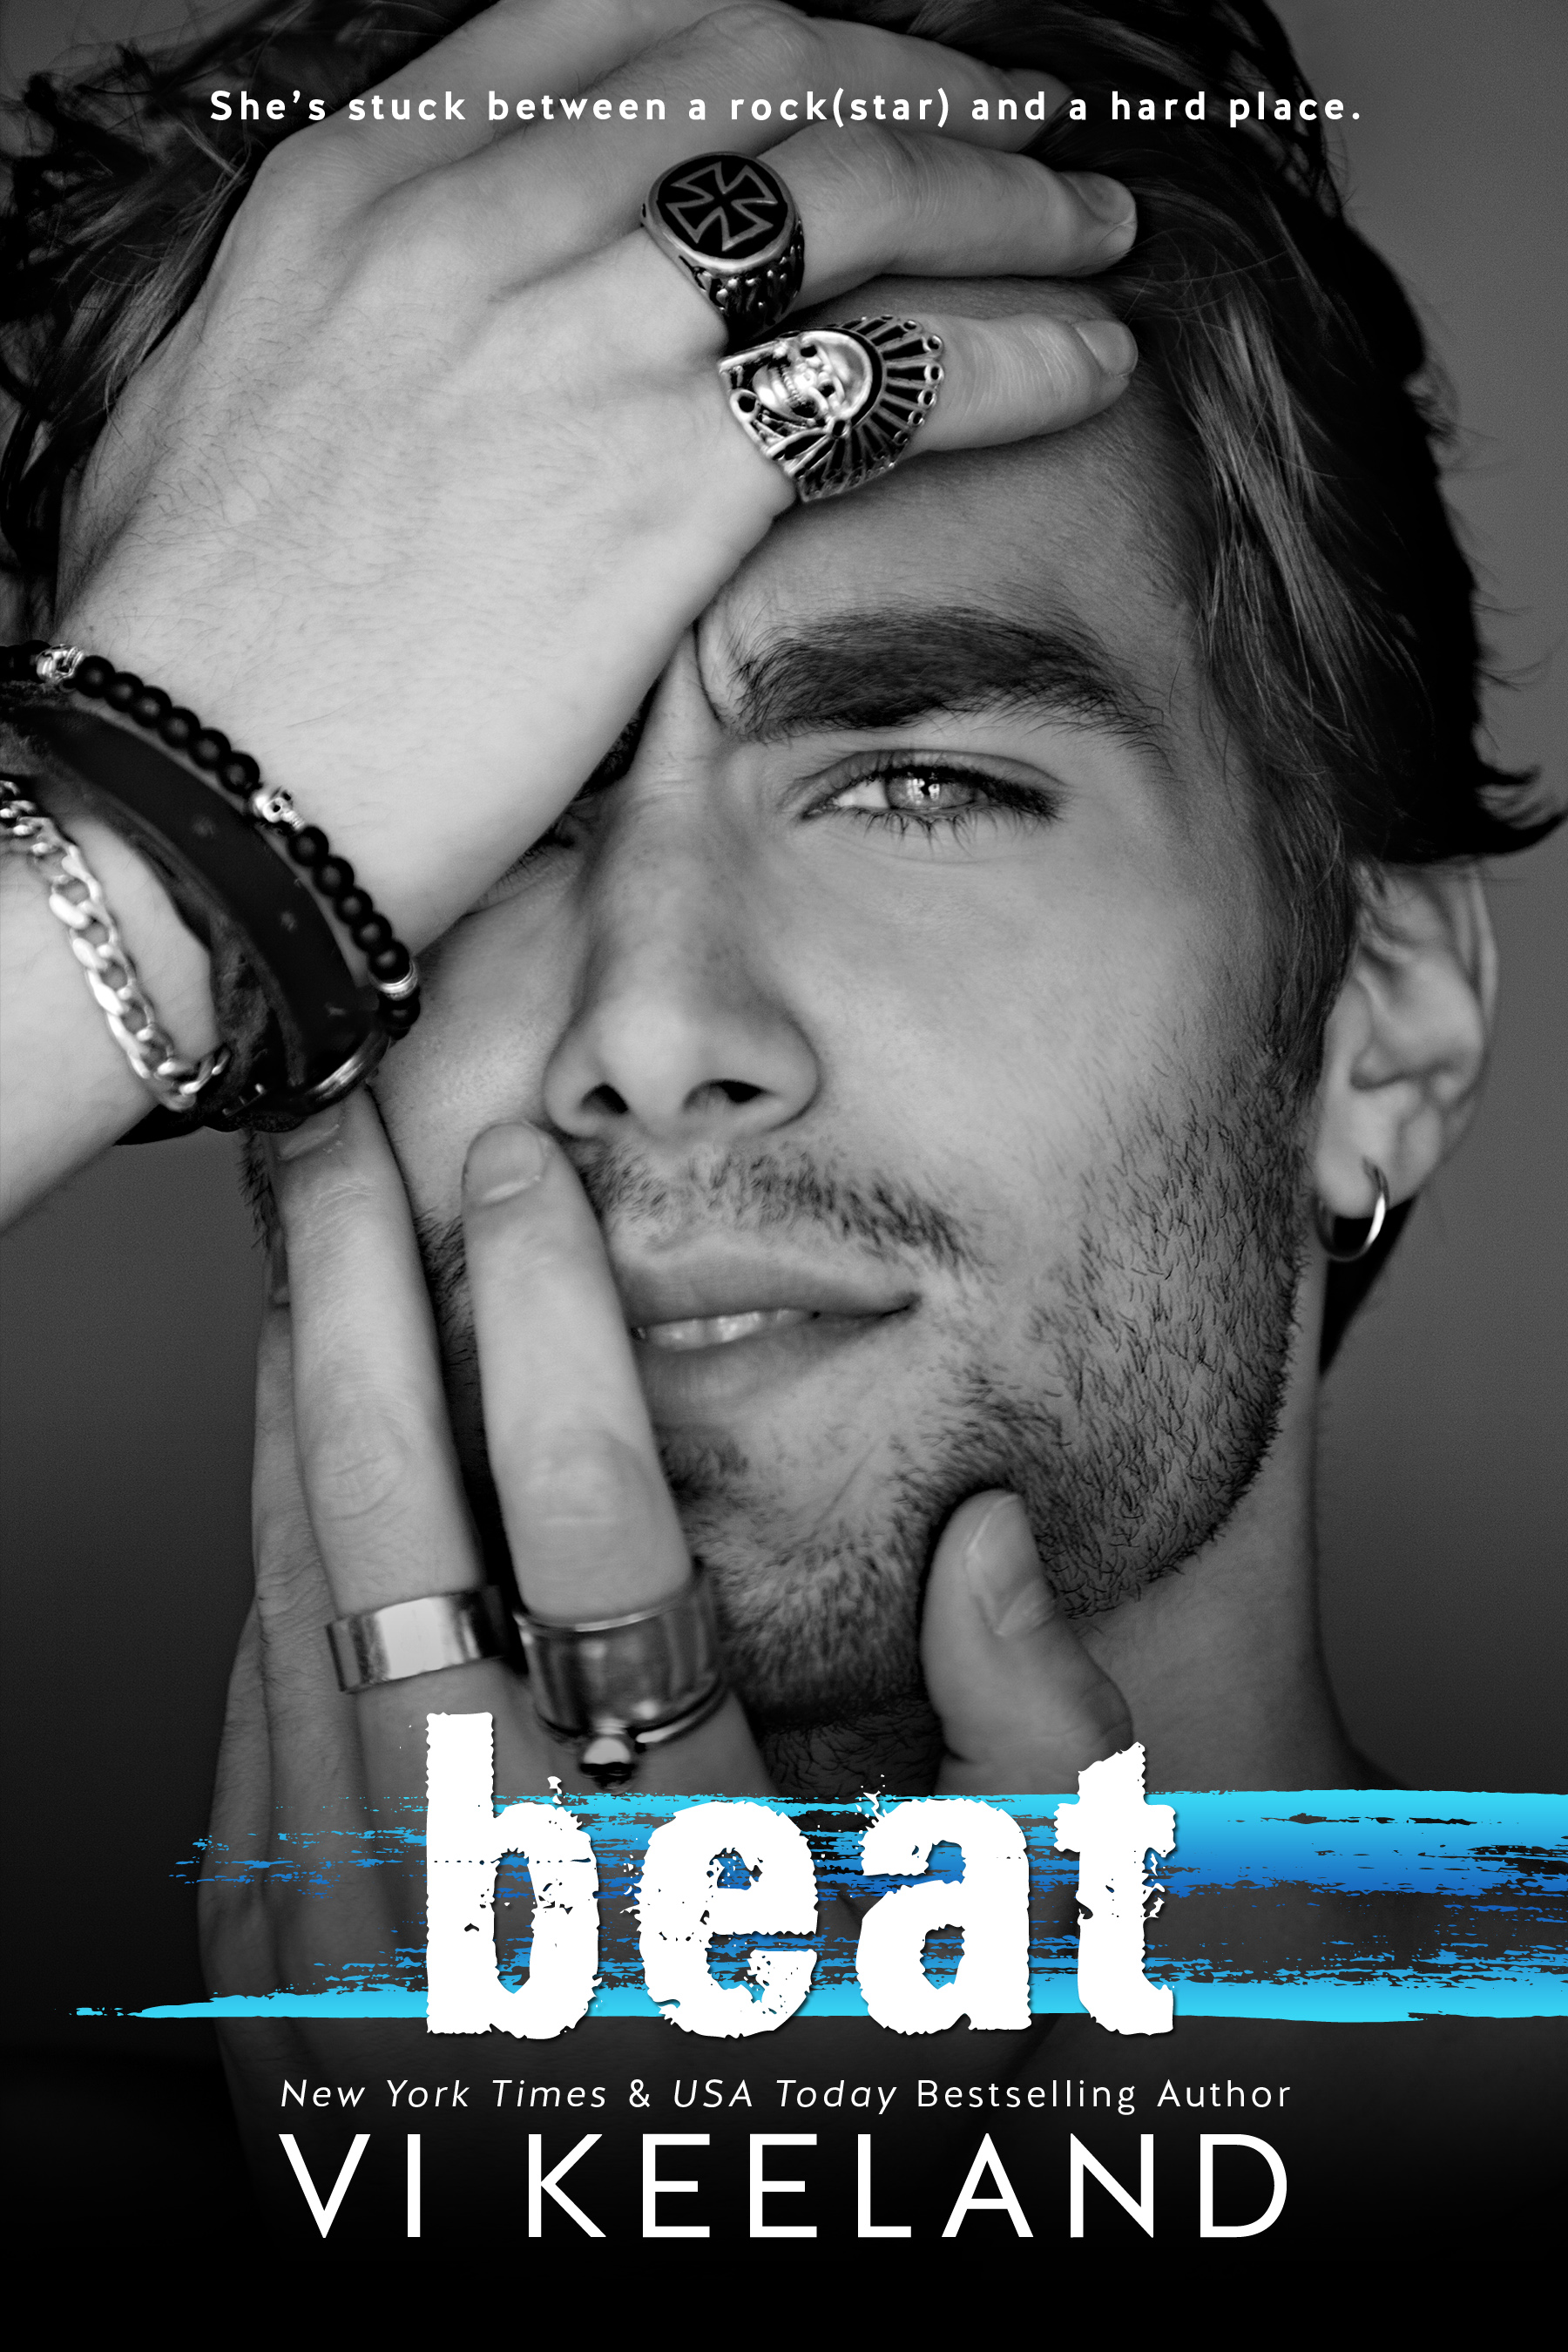 Blog Tour, Review, Excerpt, Teasers & Giveaway: Beat by Vi Keeland